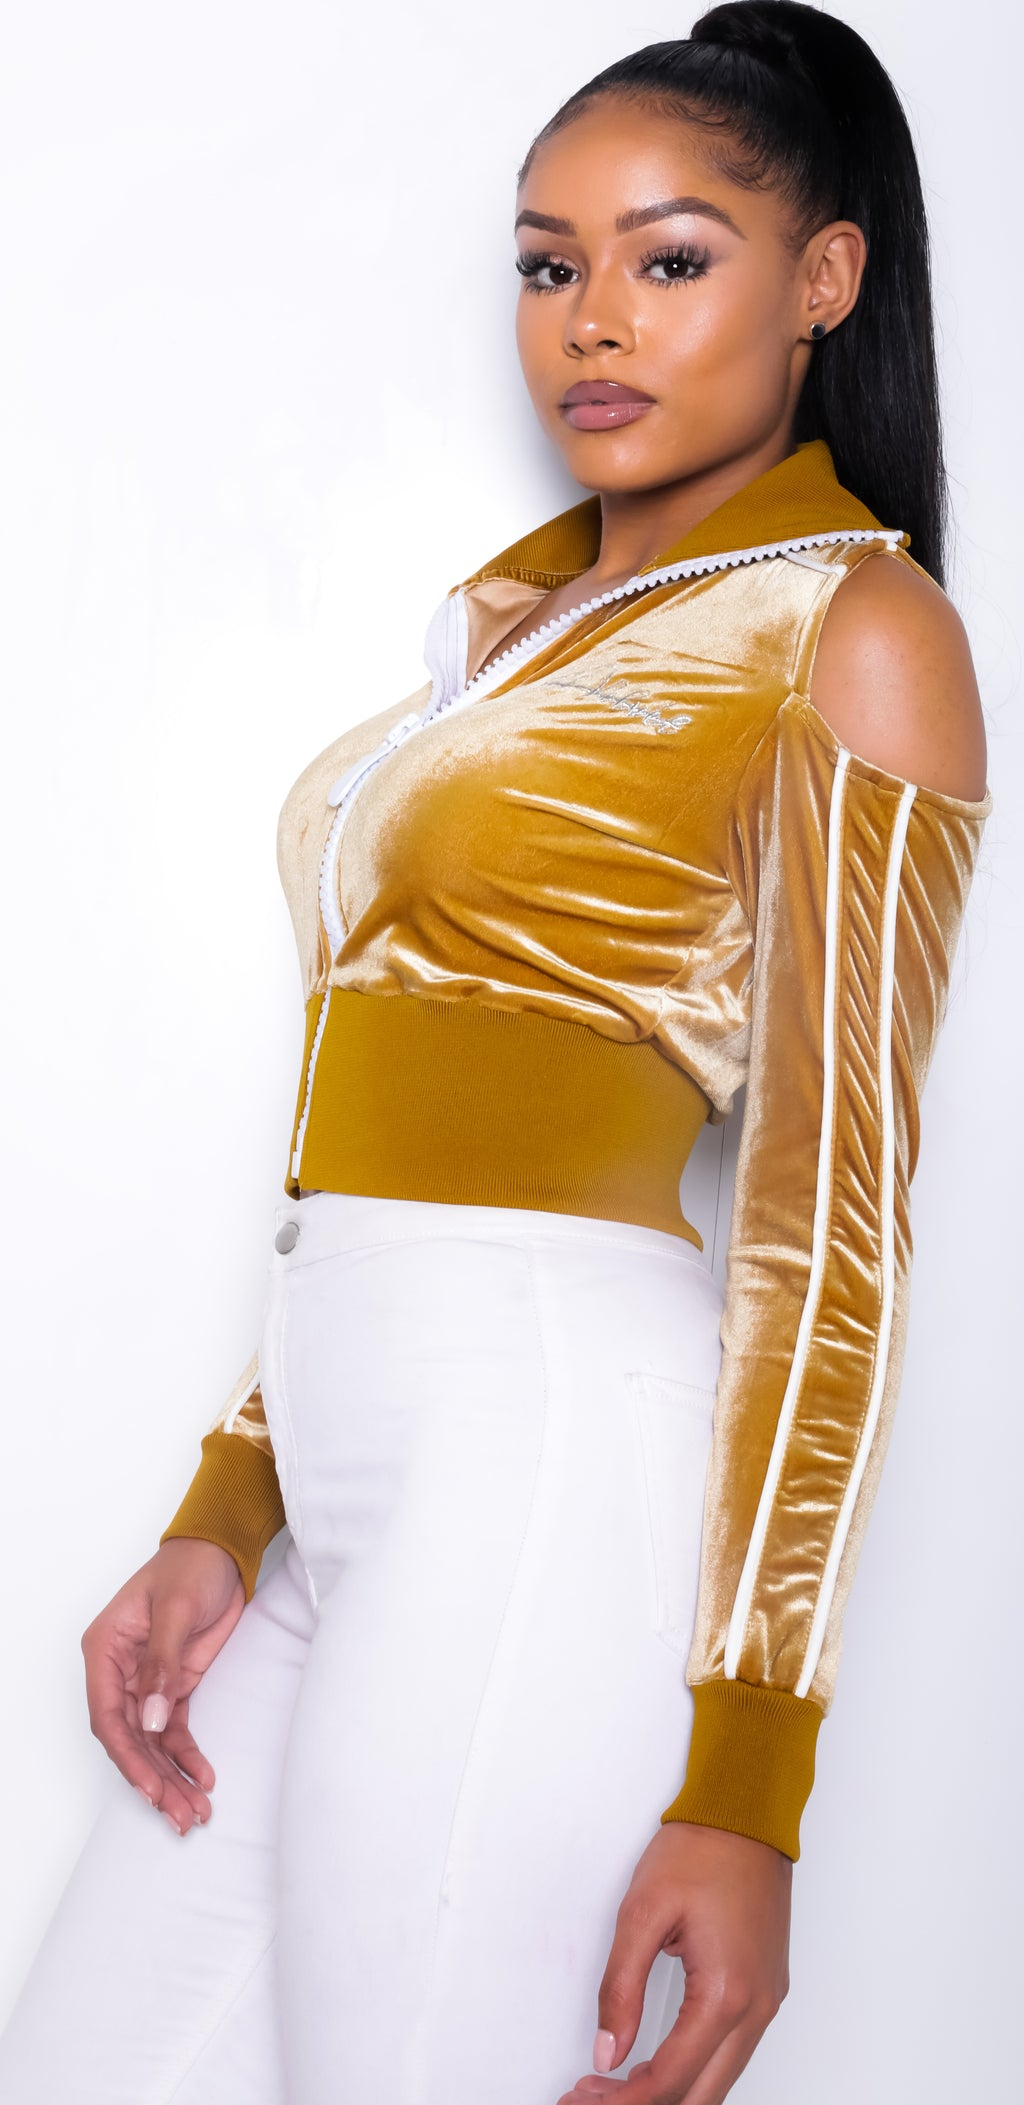 Women's Collar'd Lined LON Gold Velvet Top